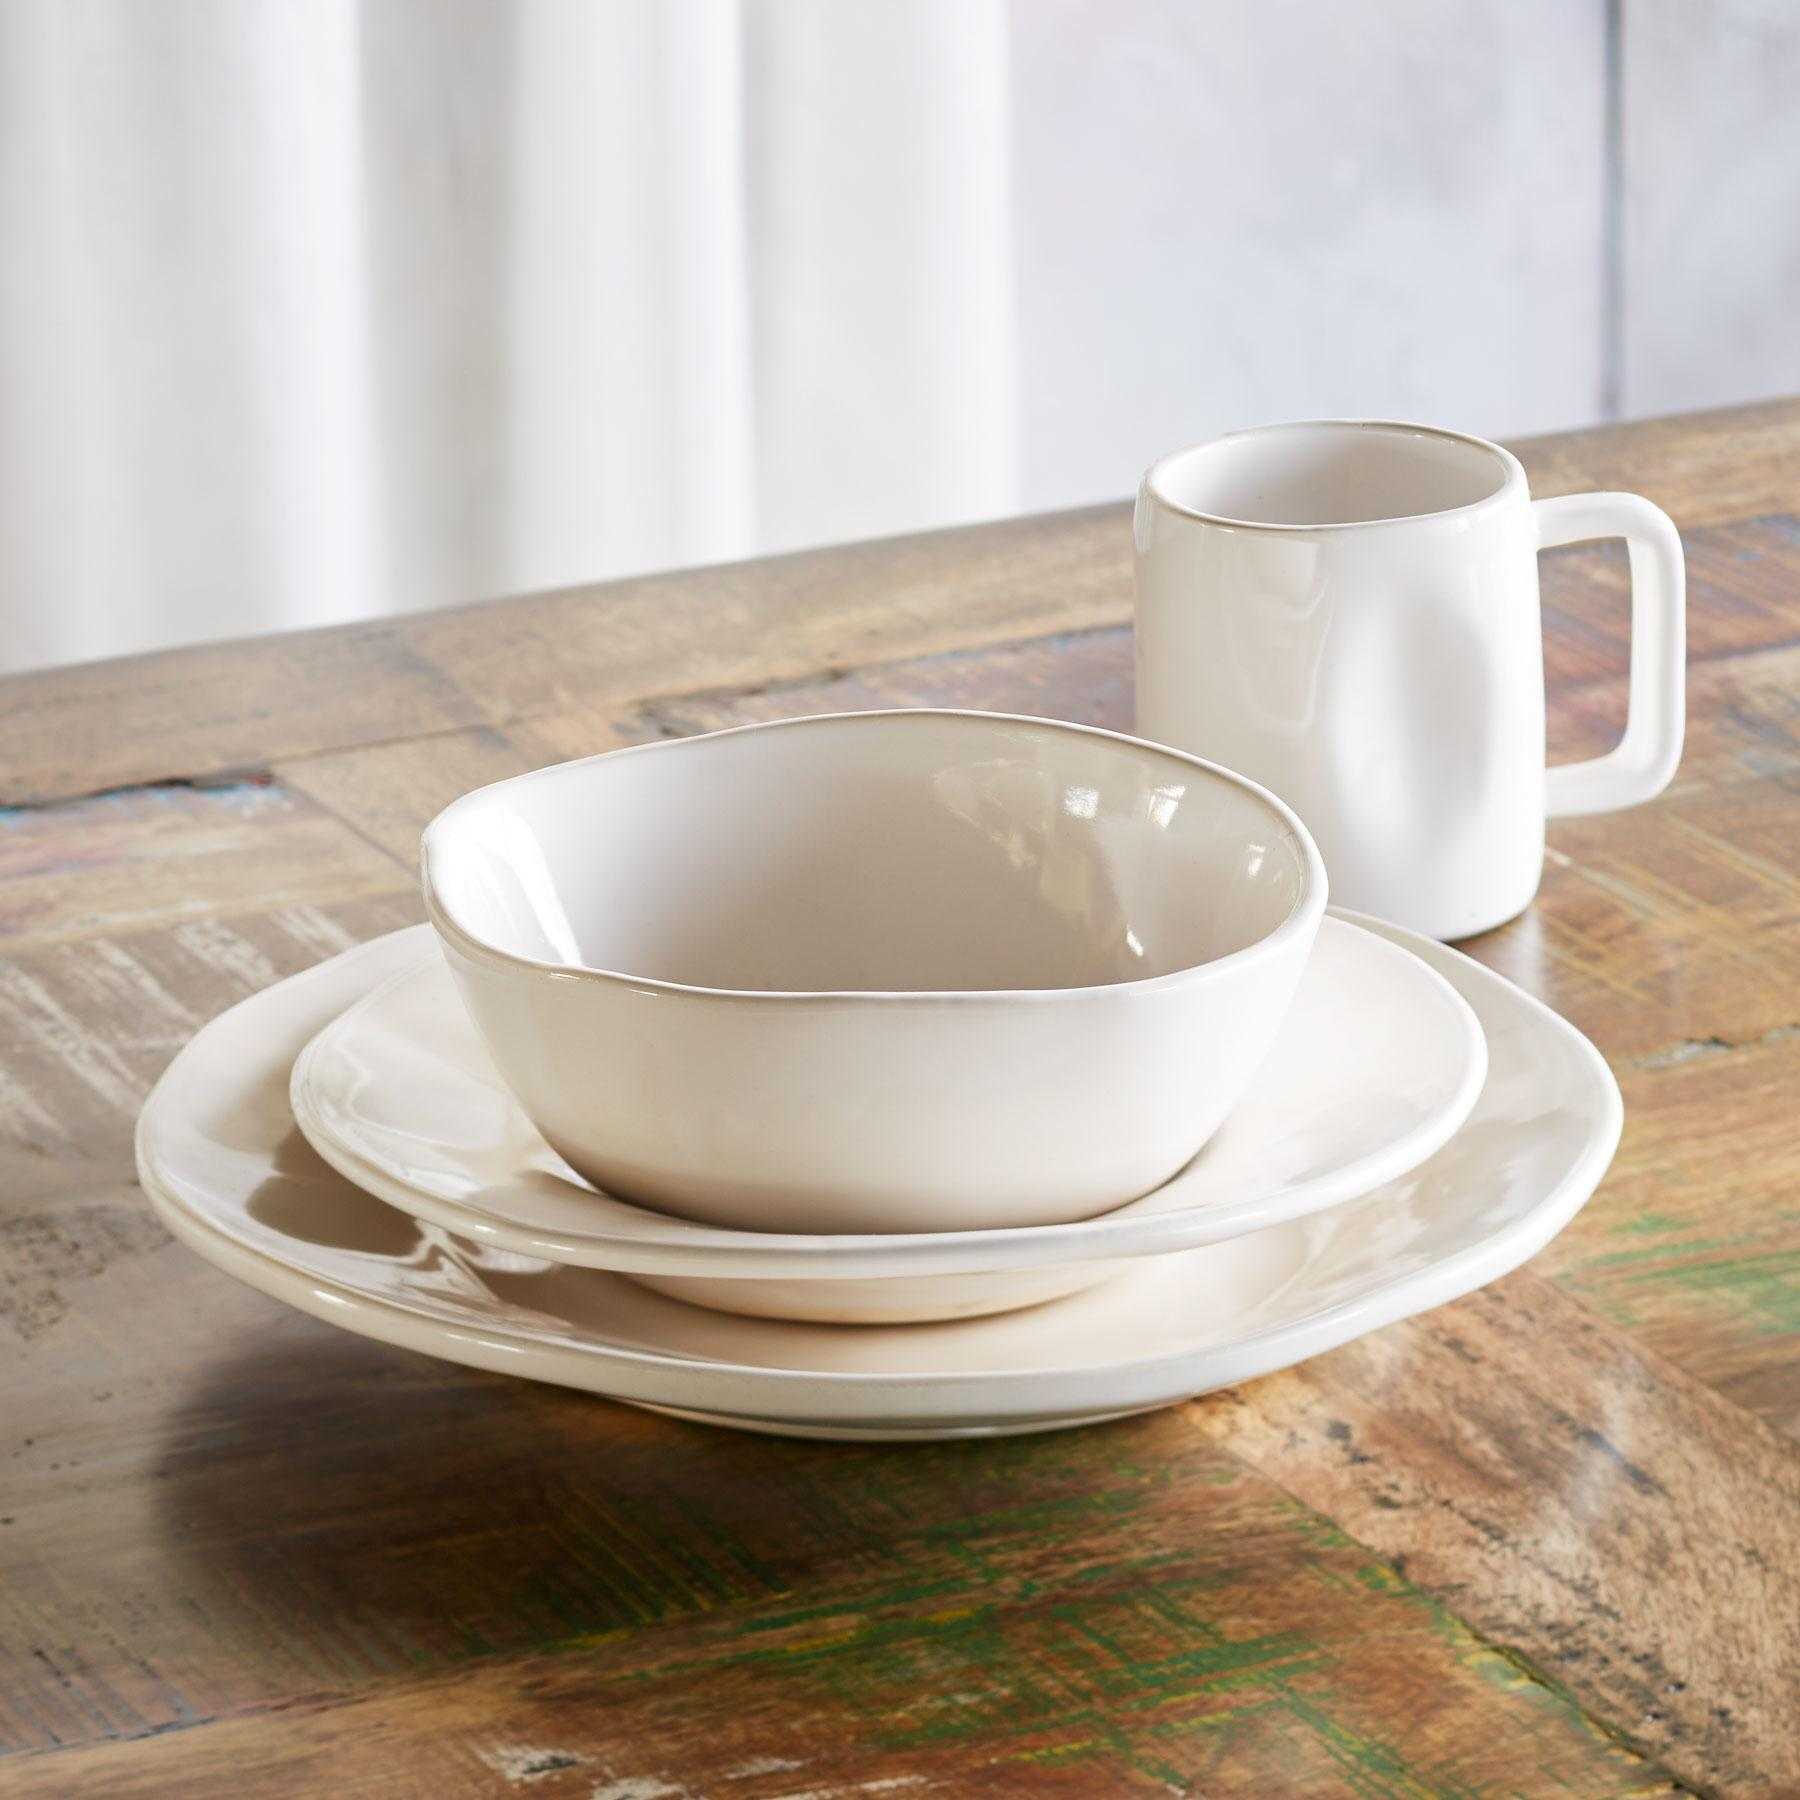 ALEX MARSHALL ORGANIC DINNERWARE, 4-PIECE PLACE SETTING: View 1